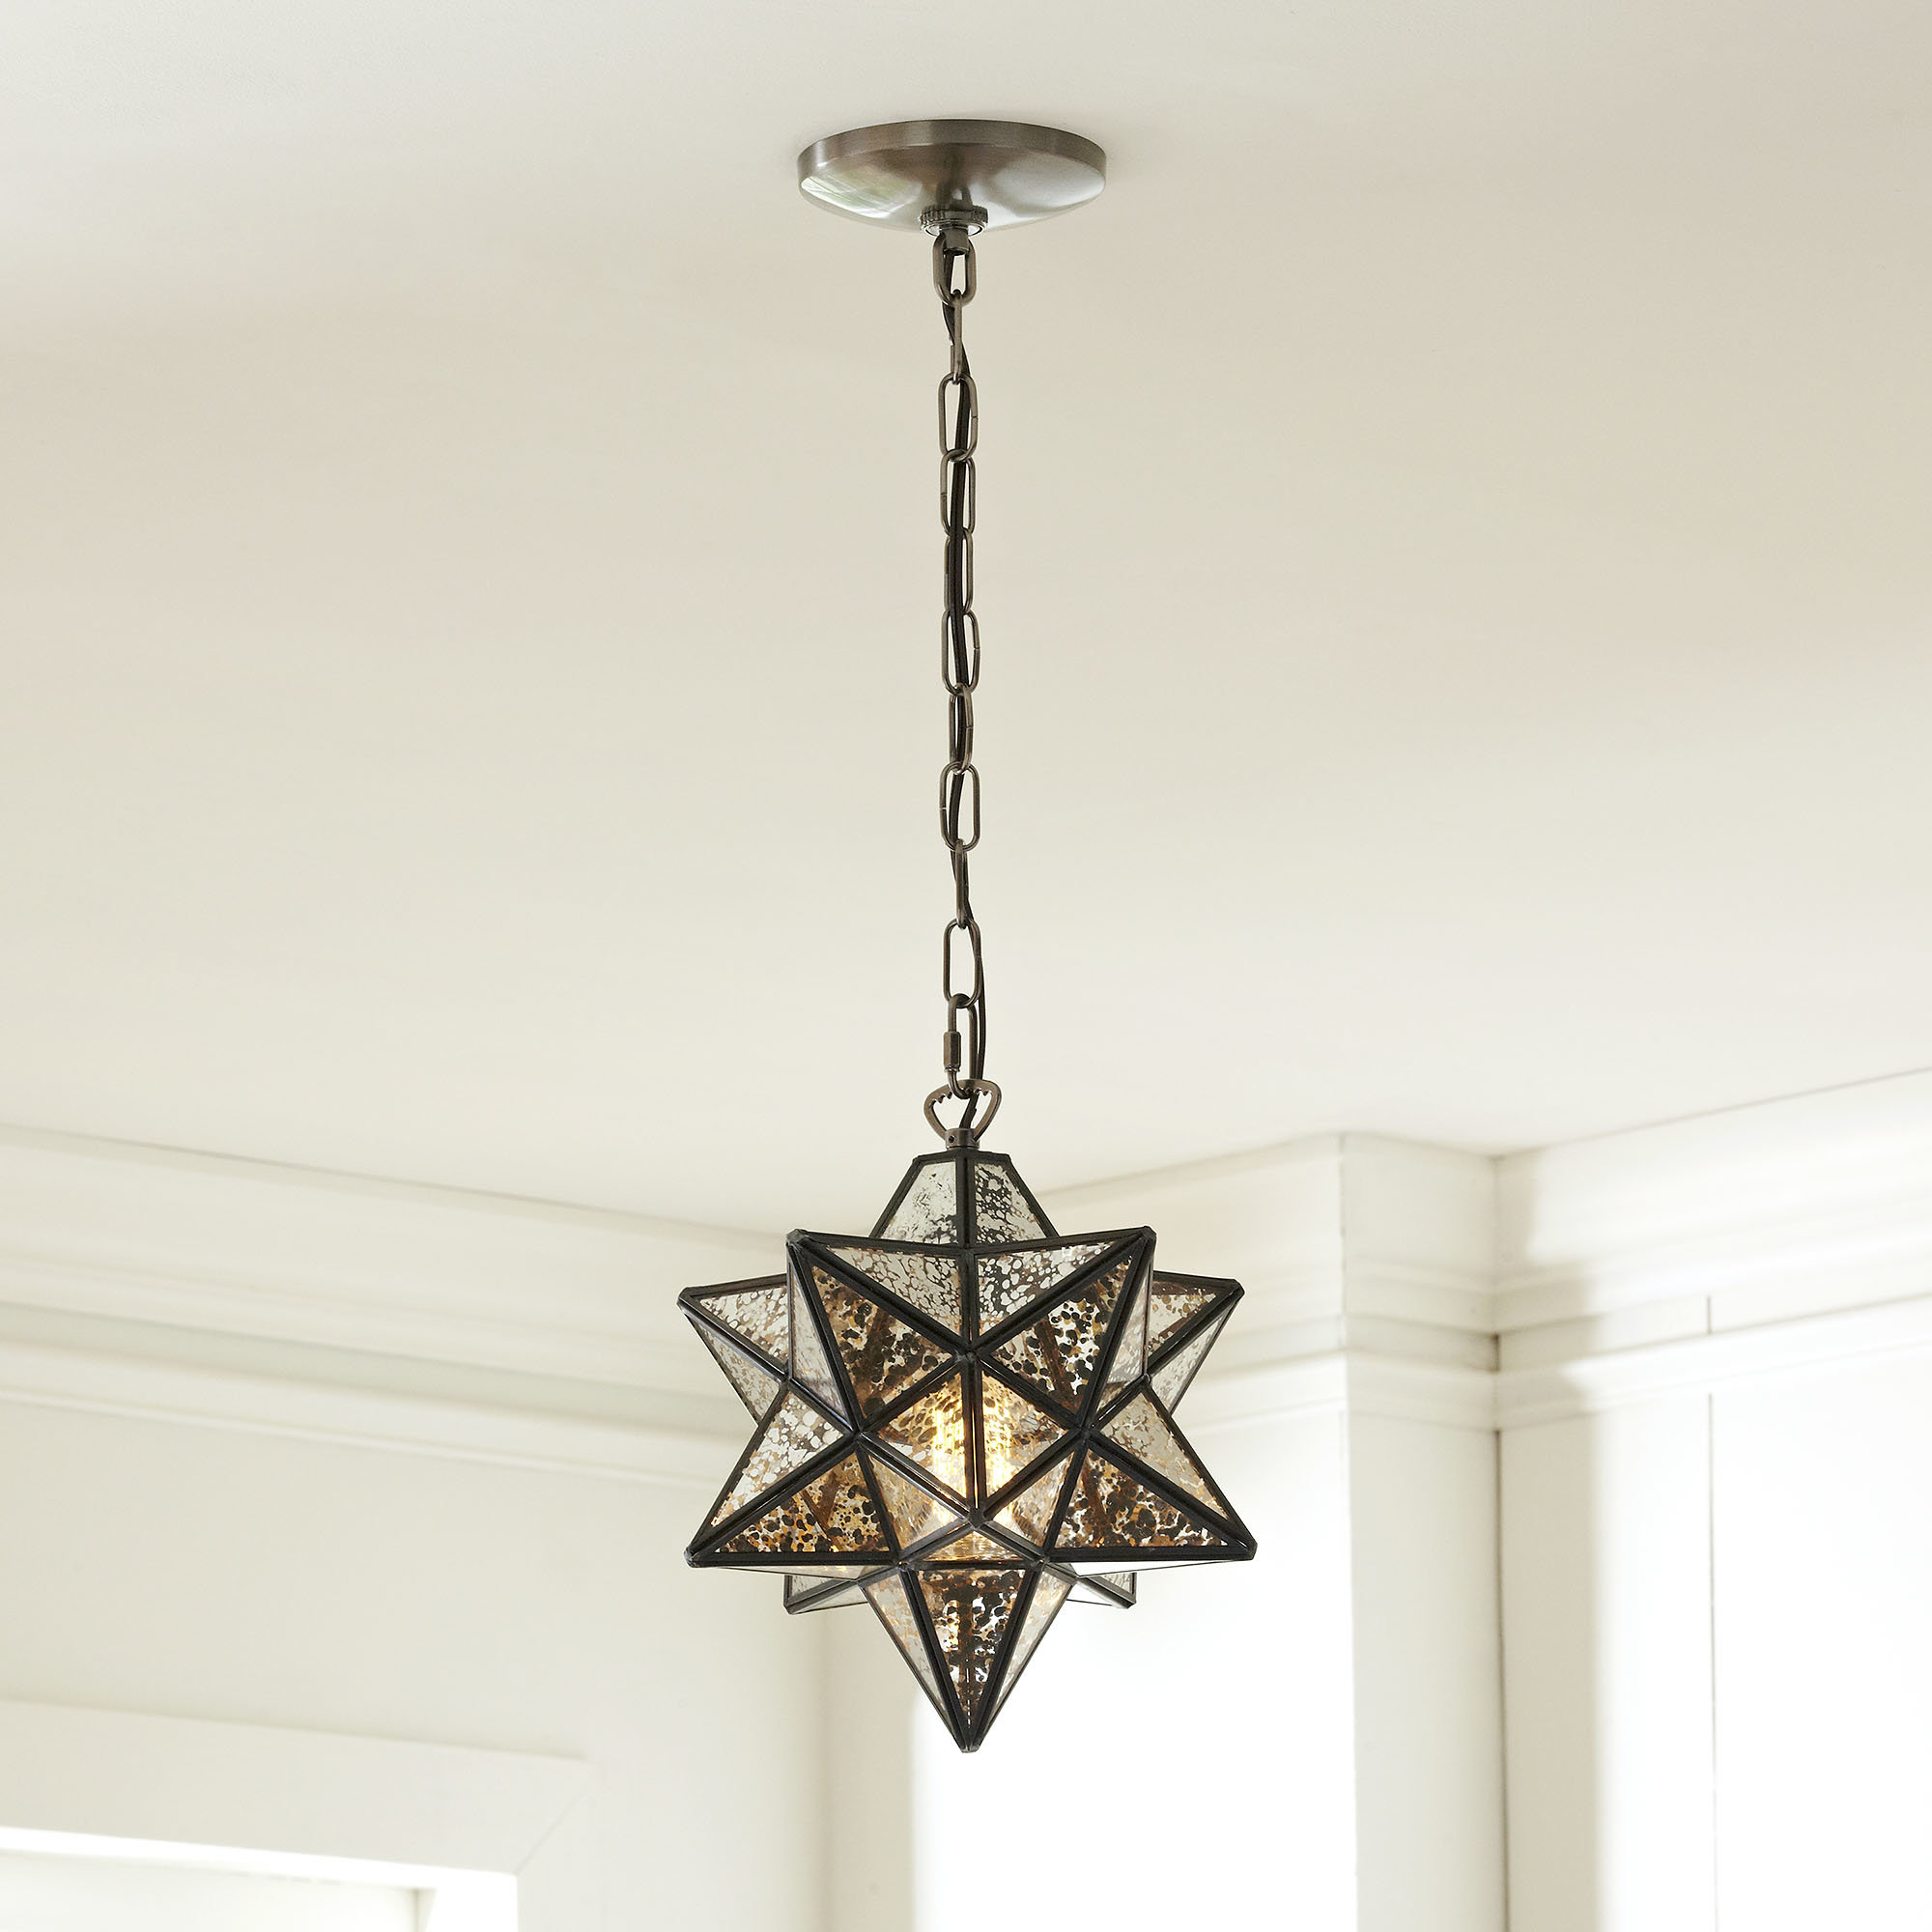 1 Light Single Star Pendant Within 1 Light Single Star Pendants (View 4 of 30)